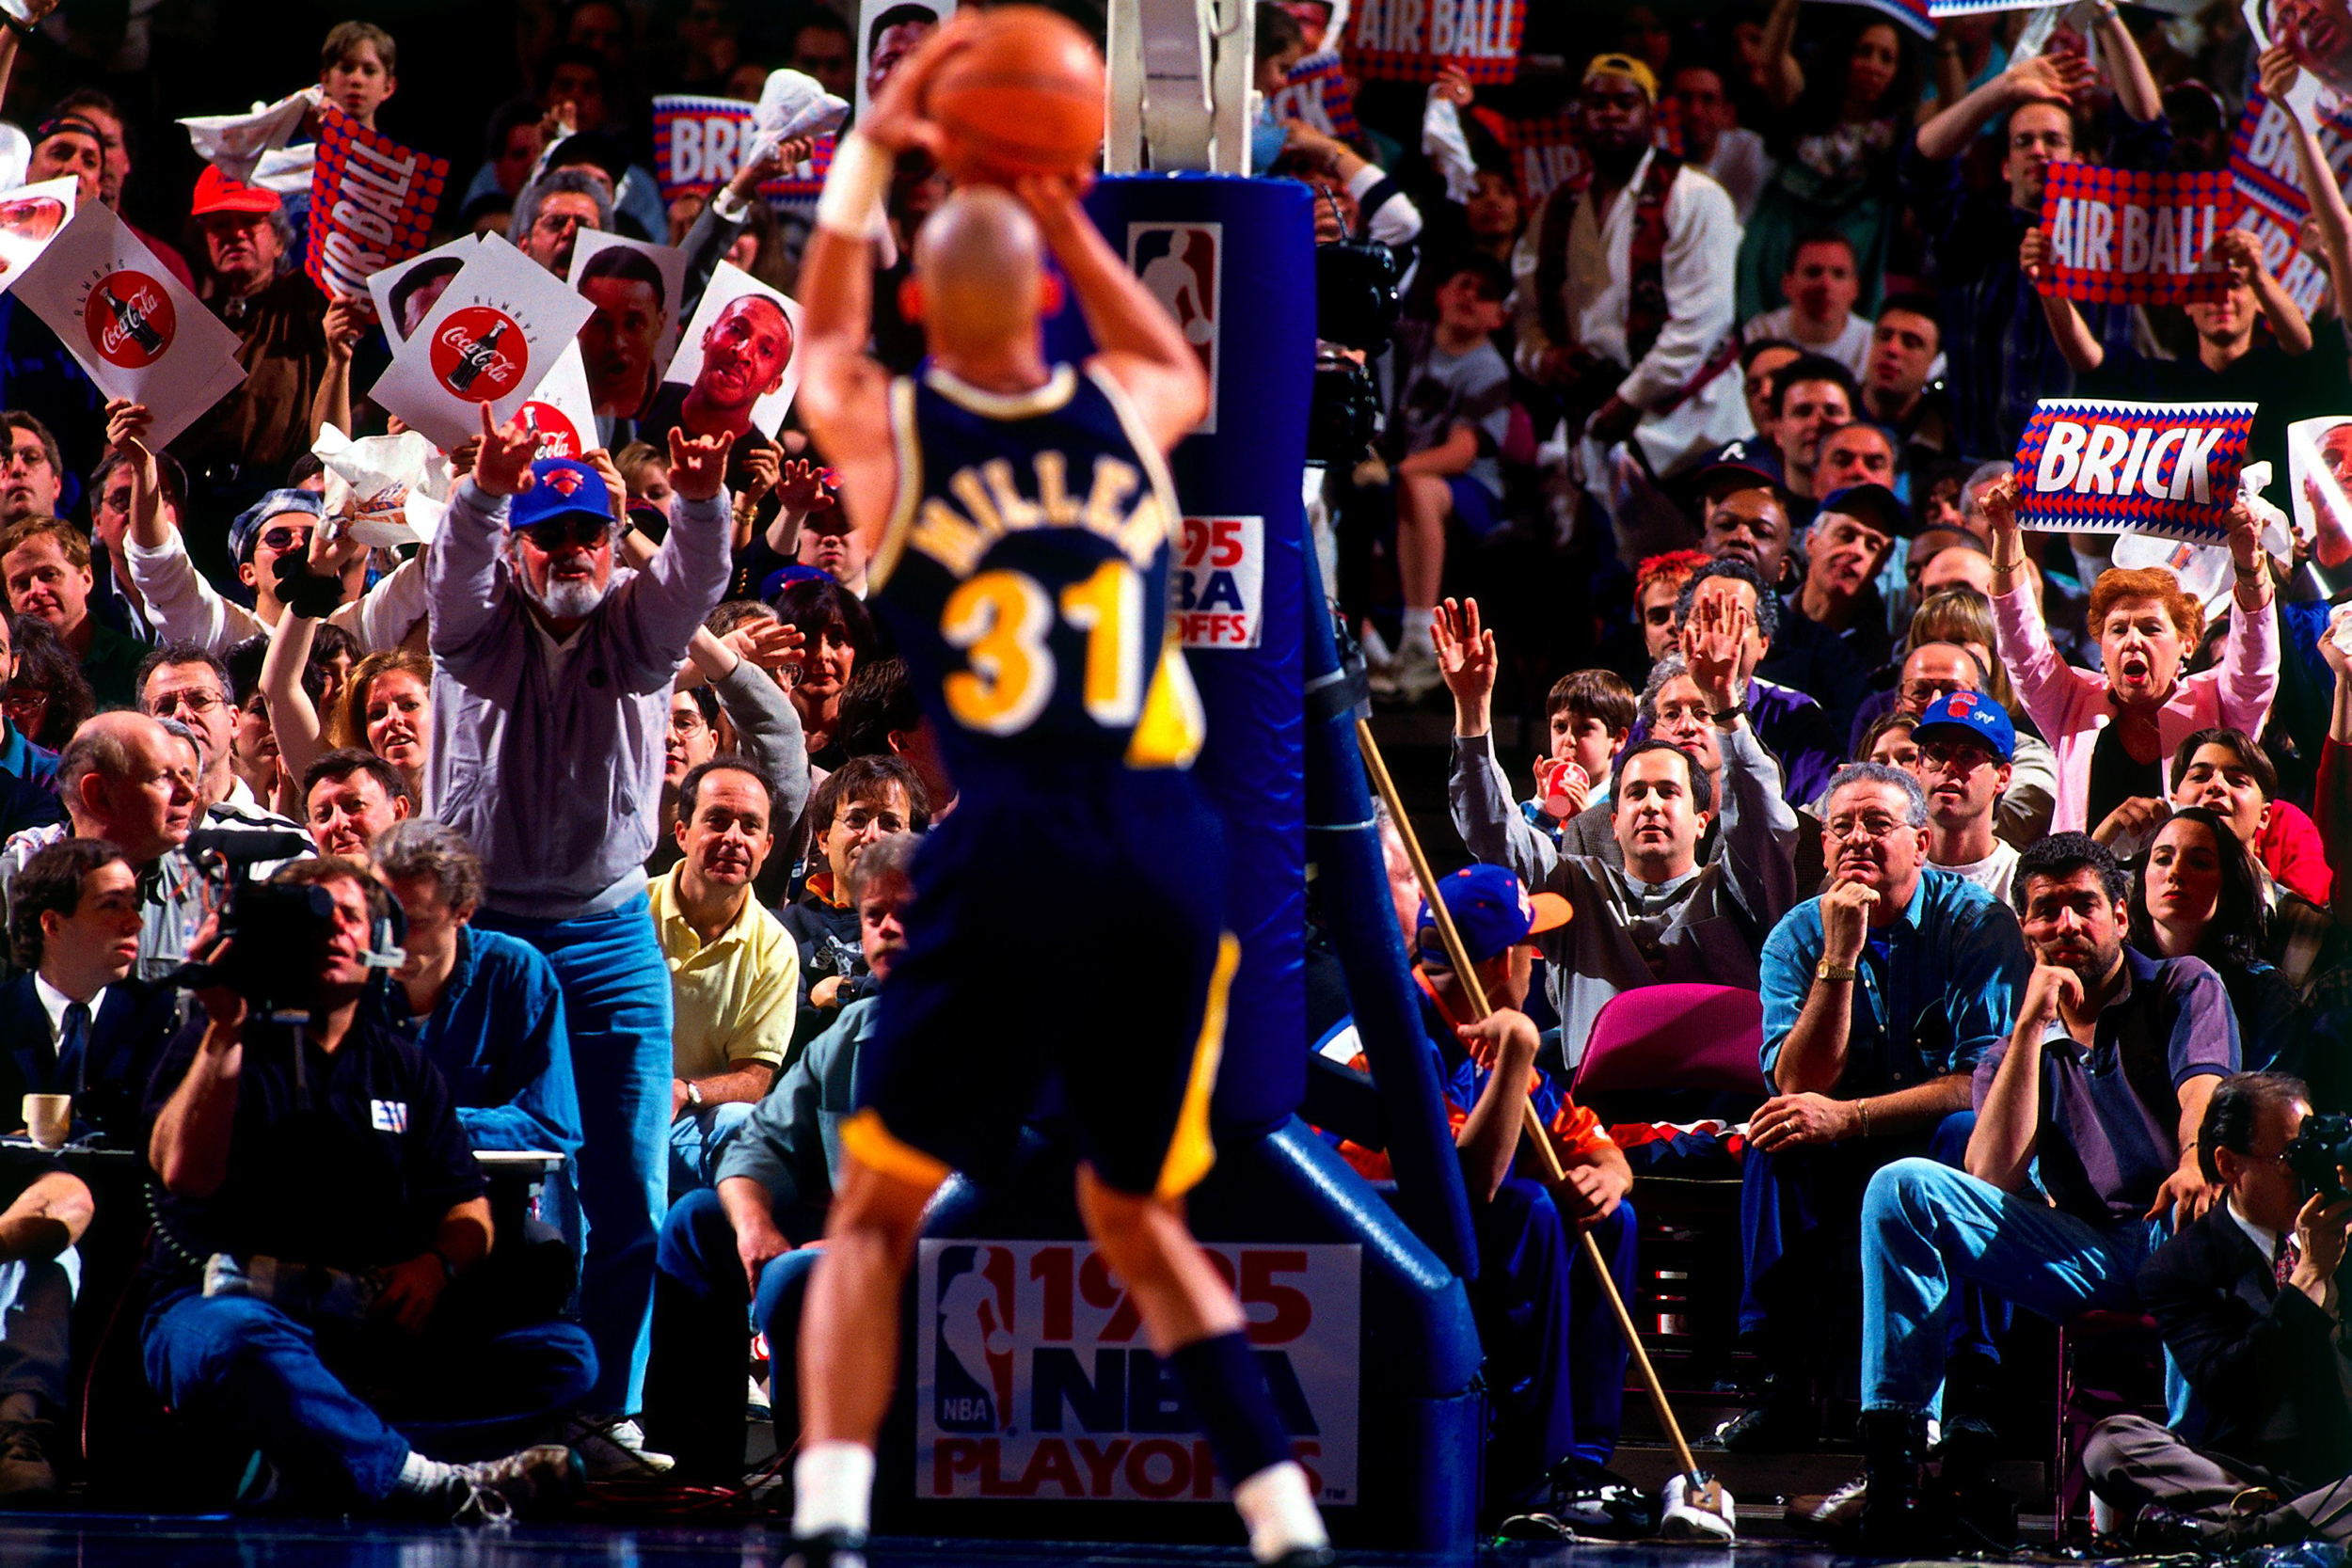 Reggie Miller #31 of the Indiana Pacers shoots a free-throw in Game One of the Eastern Conference Semifinals against the New York Knicks during the 1995 NBA Playoffs at Madison Square Garden on May 7, 1995 in New York, New York.